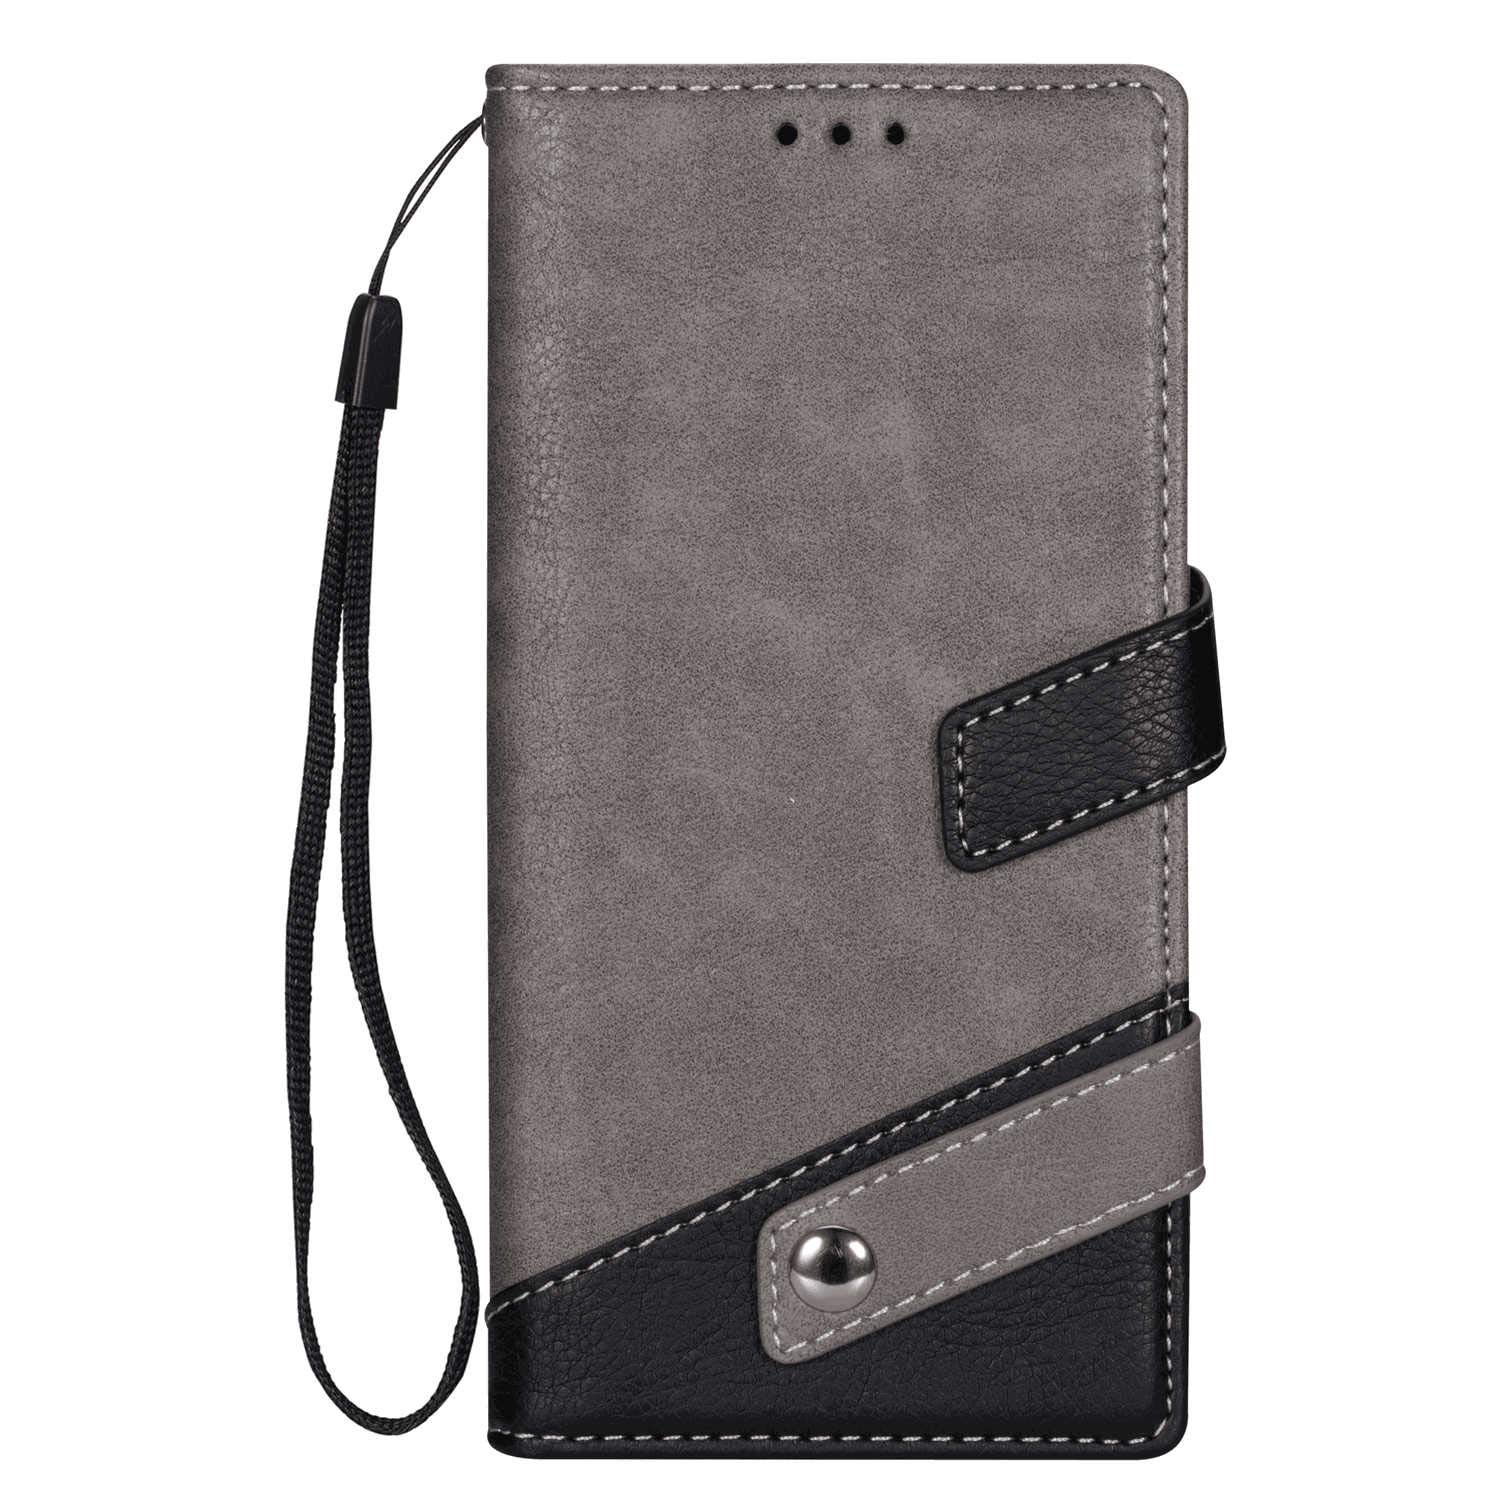 Leather Cover Compatible with Samsung Galaxy Note 10 plus, gray Wallet Case for Samsung Galaxy Note 10 plus